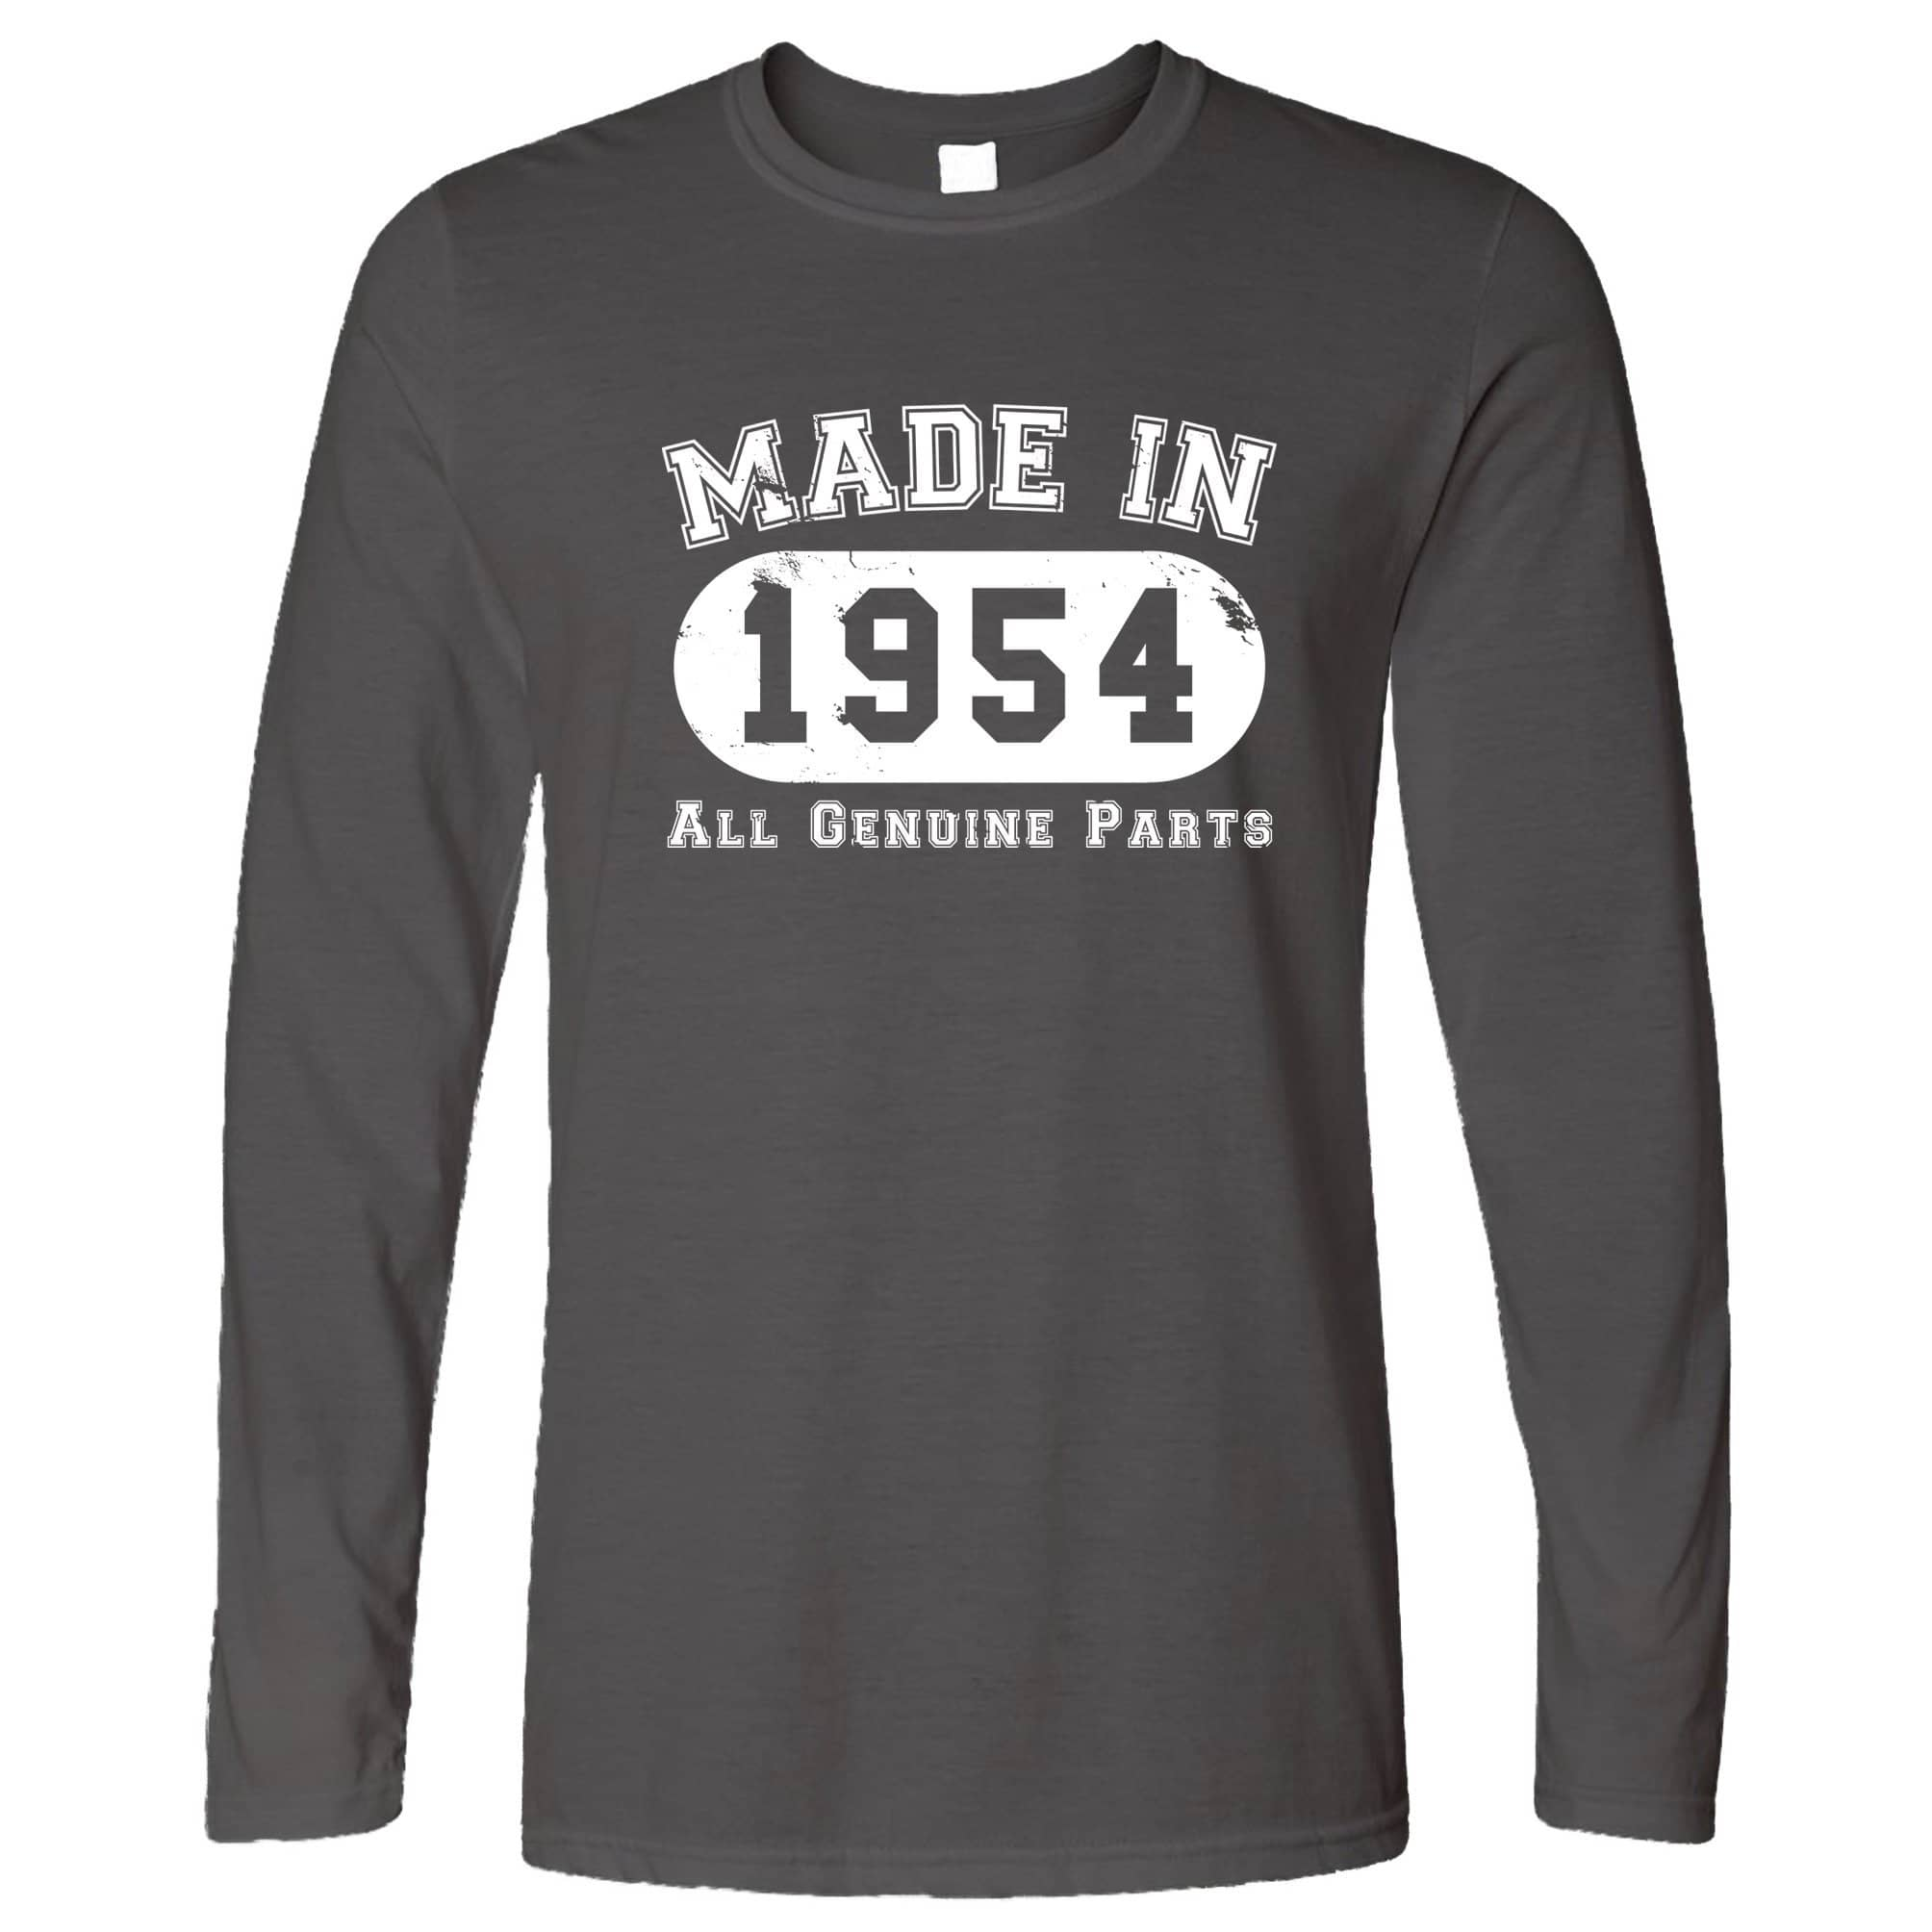 Birthday Long Sleeve Made in 1954 All Genuine Parts T-Shirt